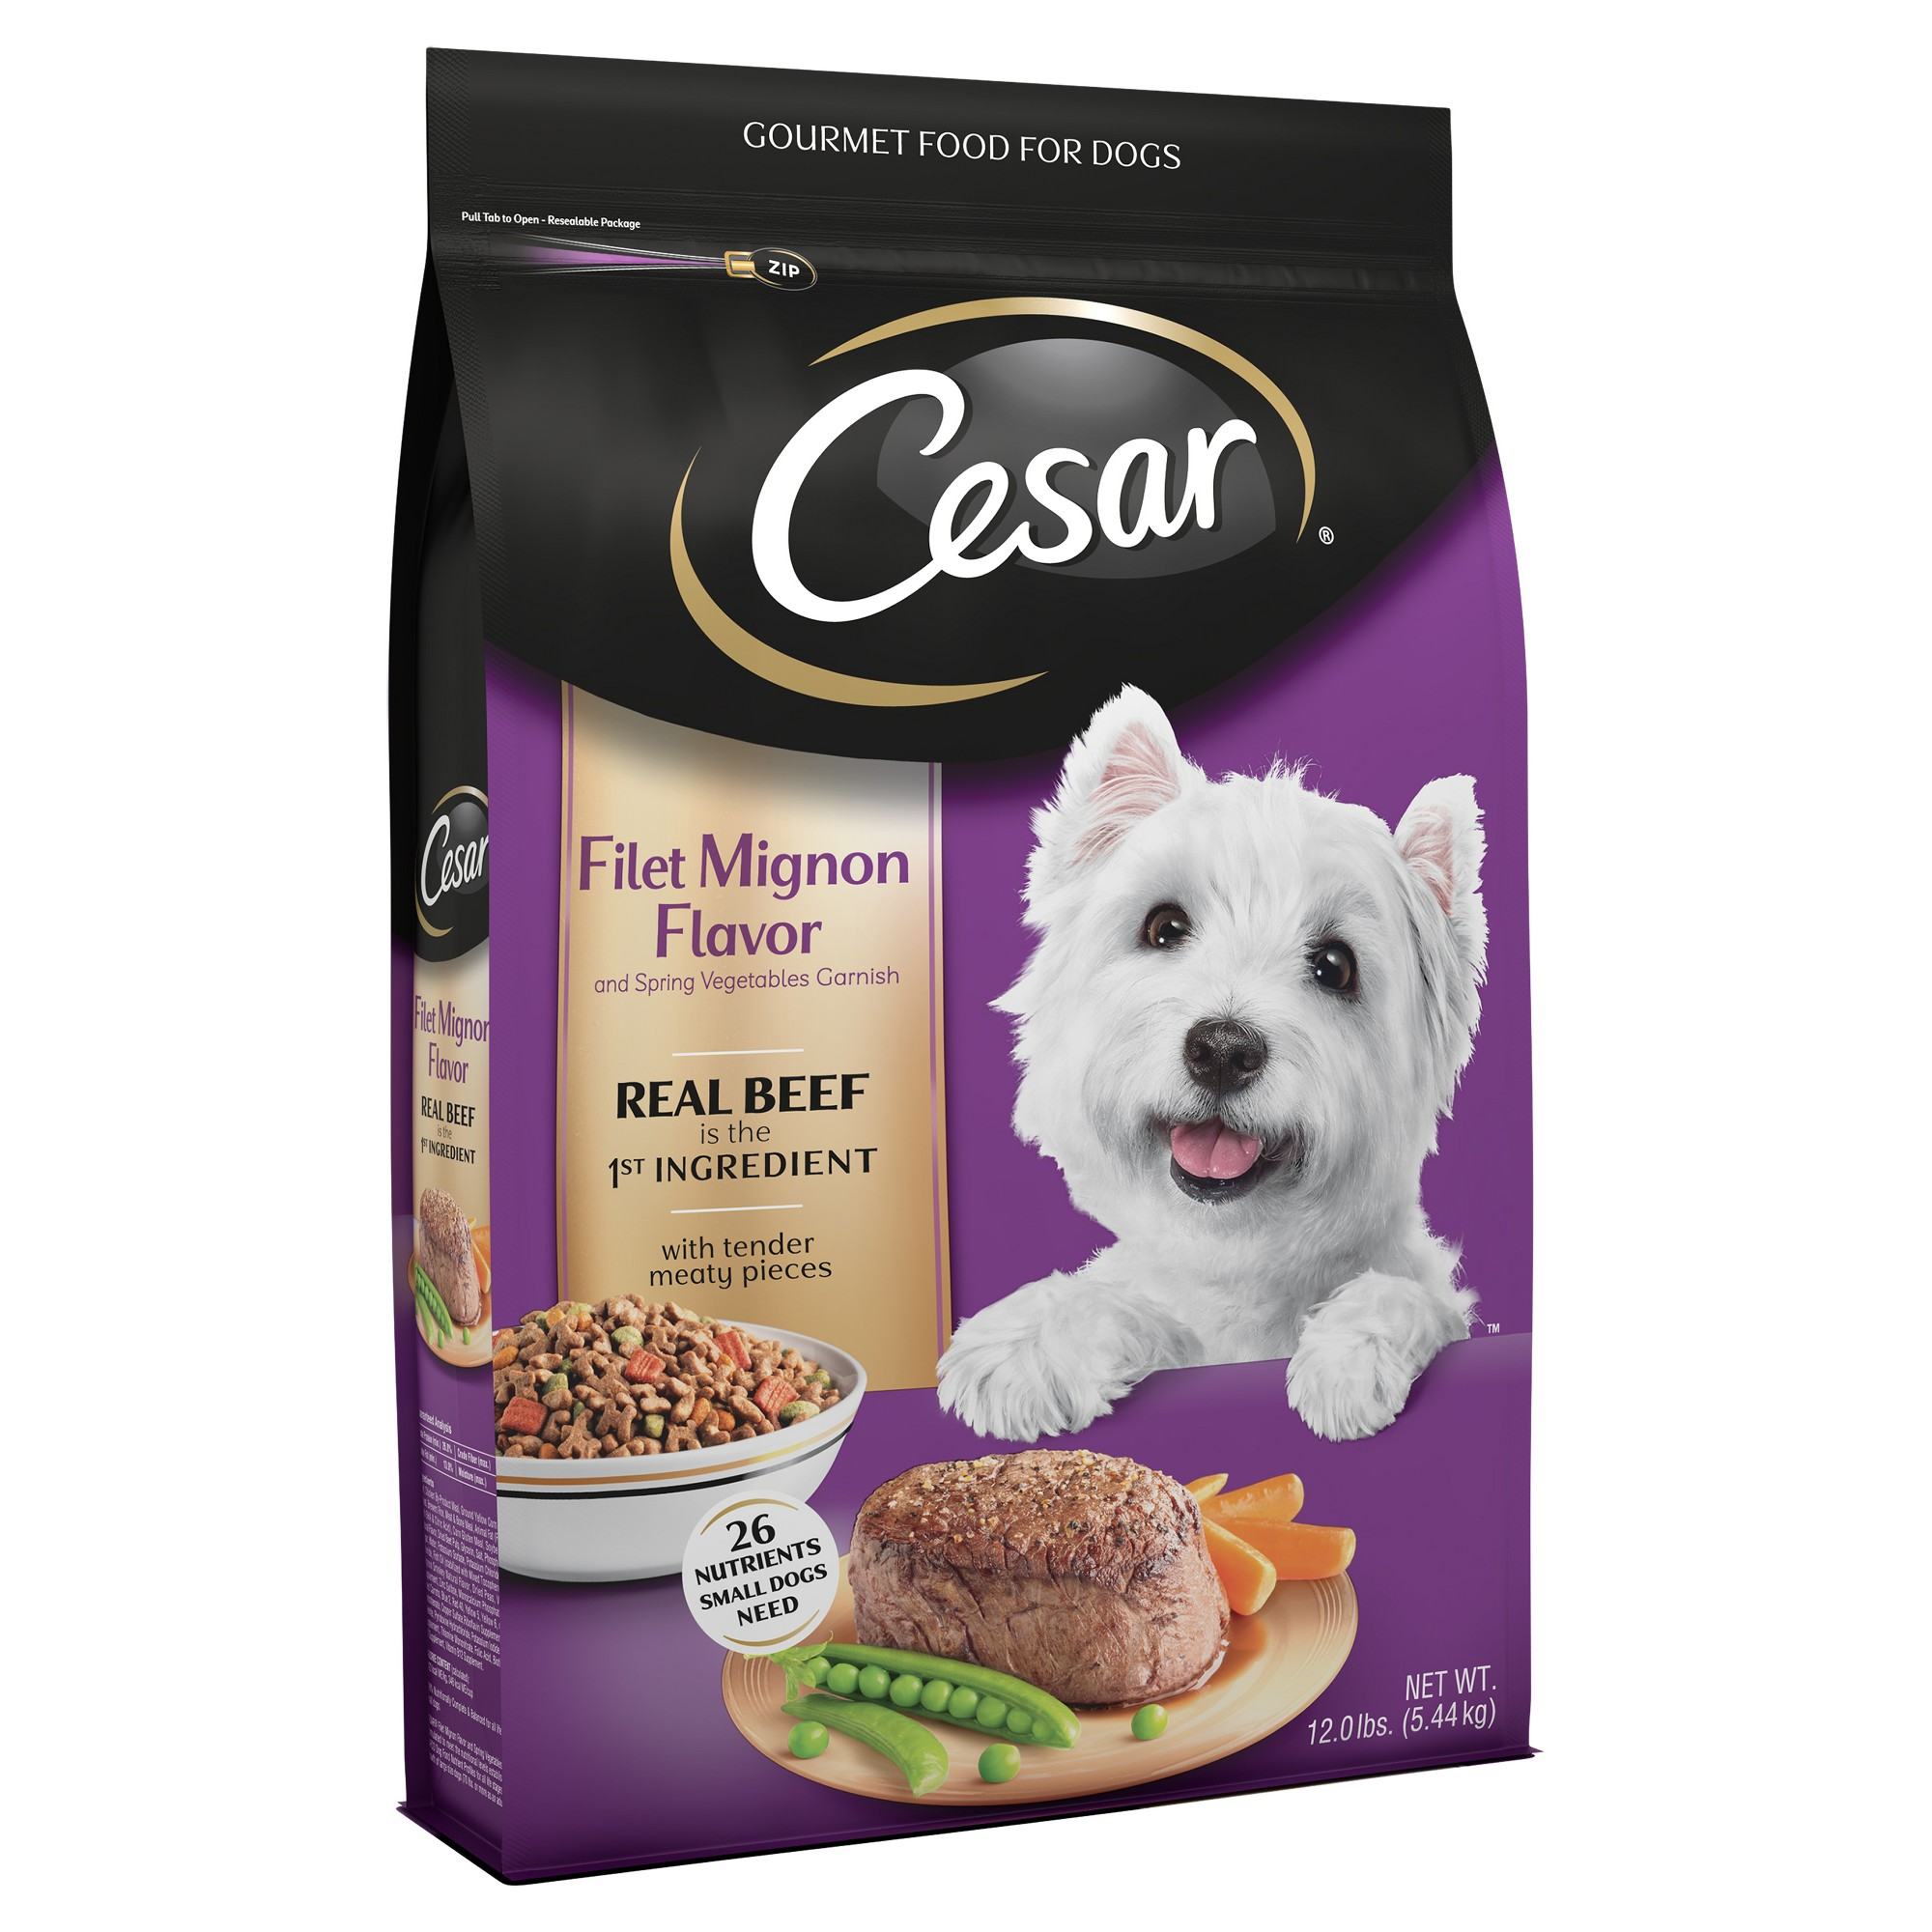 Cesar Dry Filet Mignon Flavor With Spring Vegetables Dry Dog